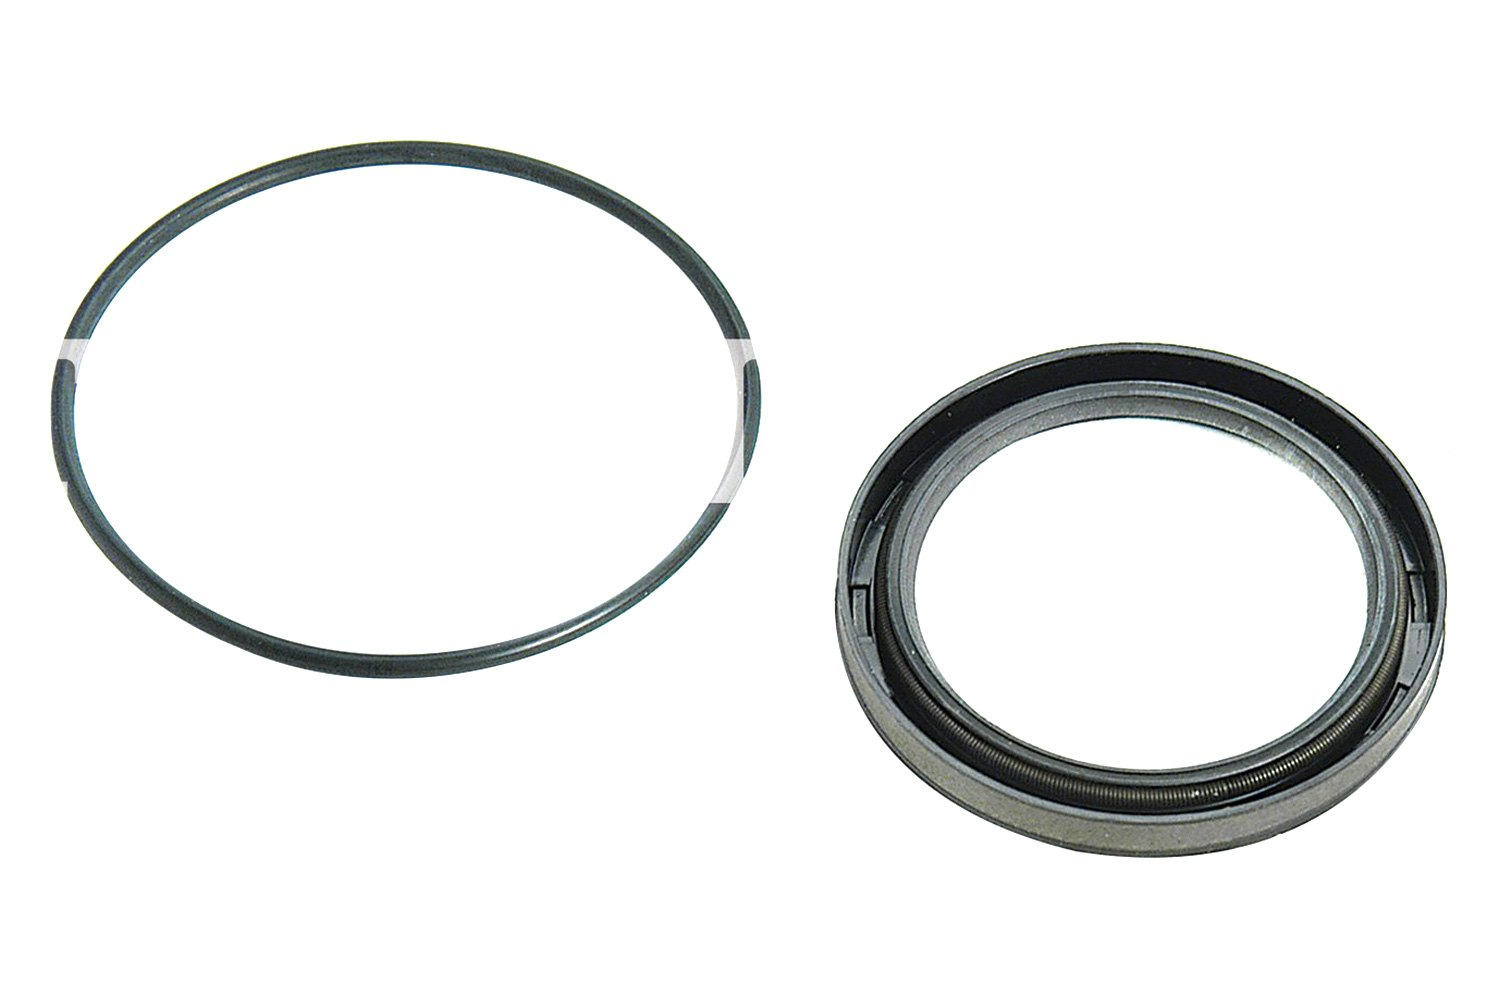 For Chevy Bel Air Timken Rear Wheel Seal Kit